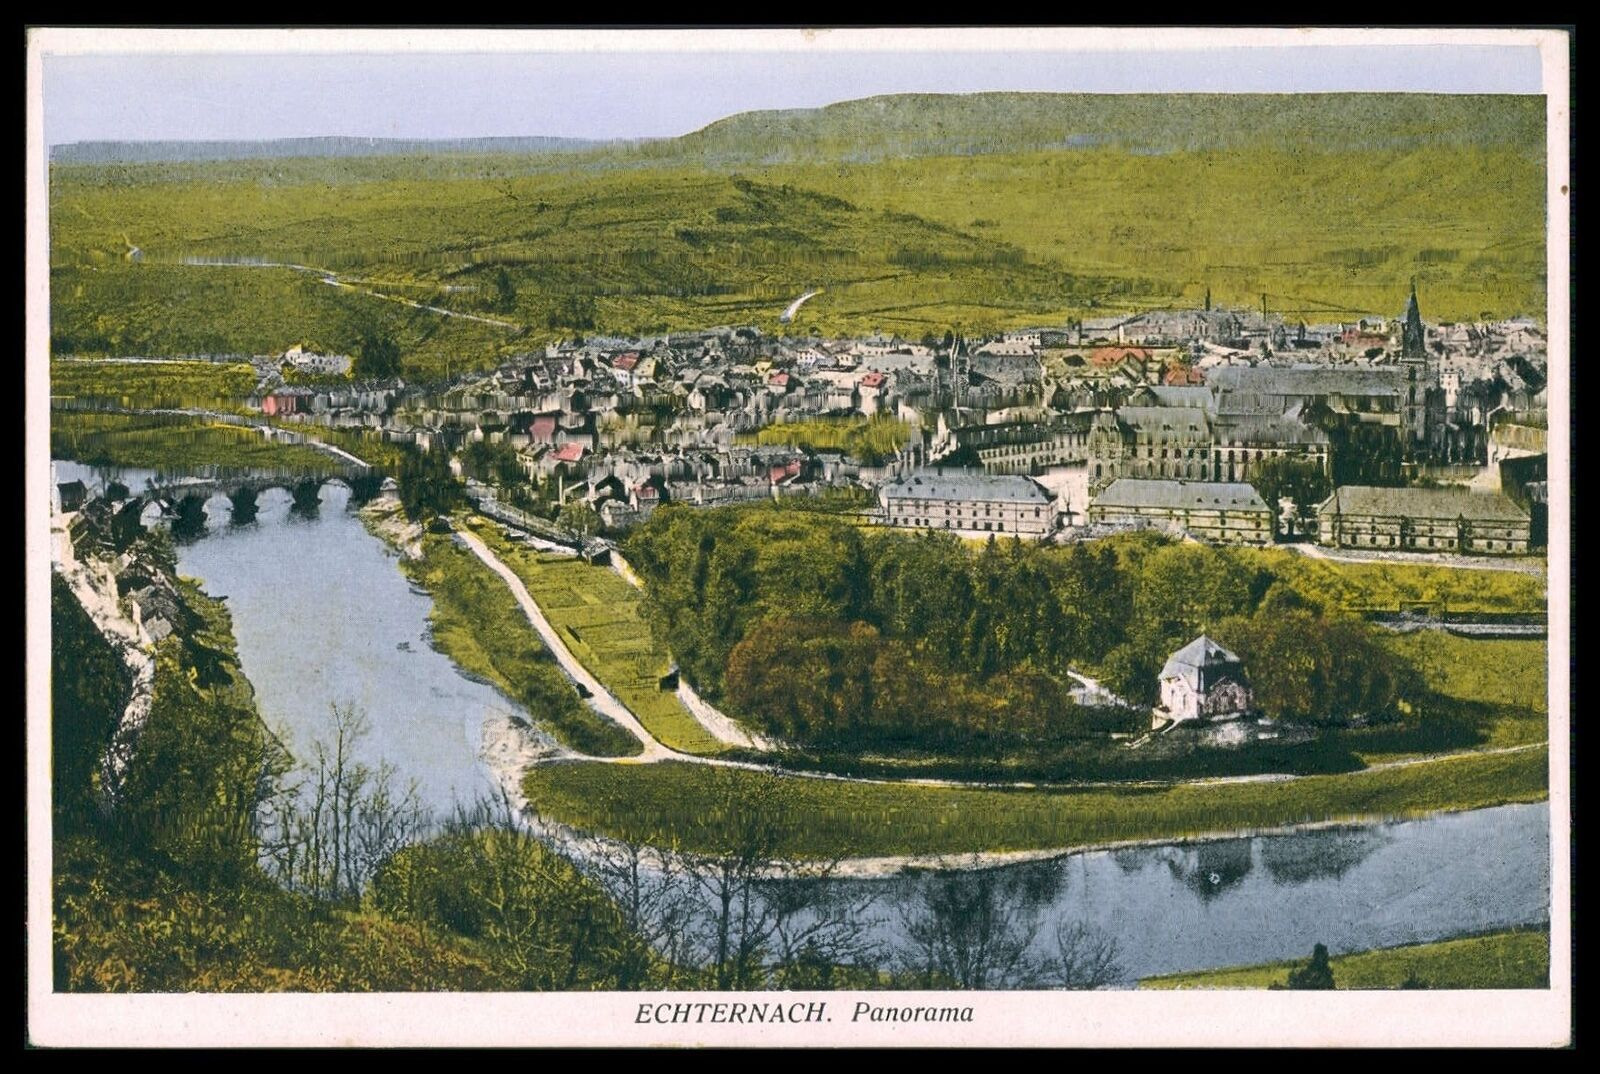 ak luxemburg luxembourg echternach alte ansichtskarte old postcard cq53 eur 7 90 picclick de. Black Bedroom Furniture Sets. Home Design Ideas